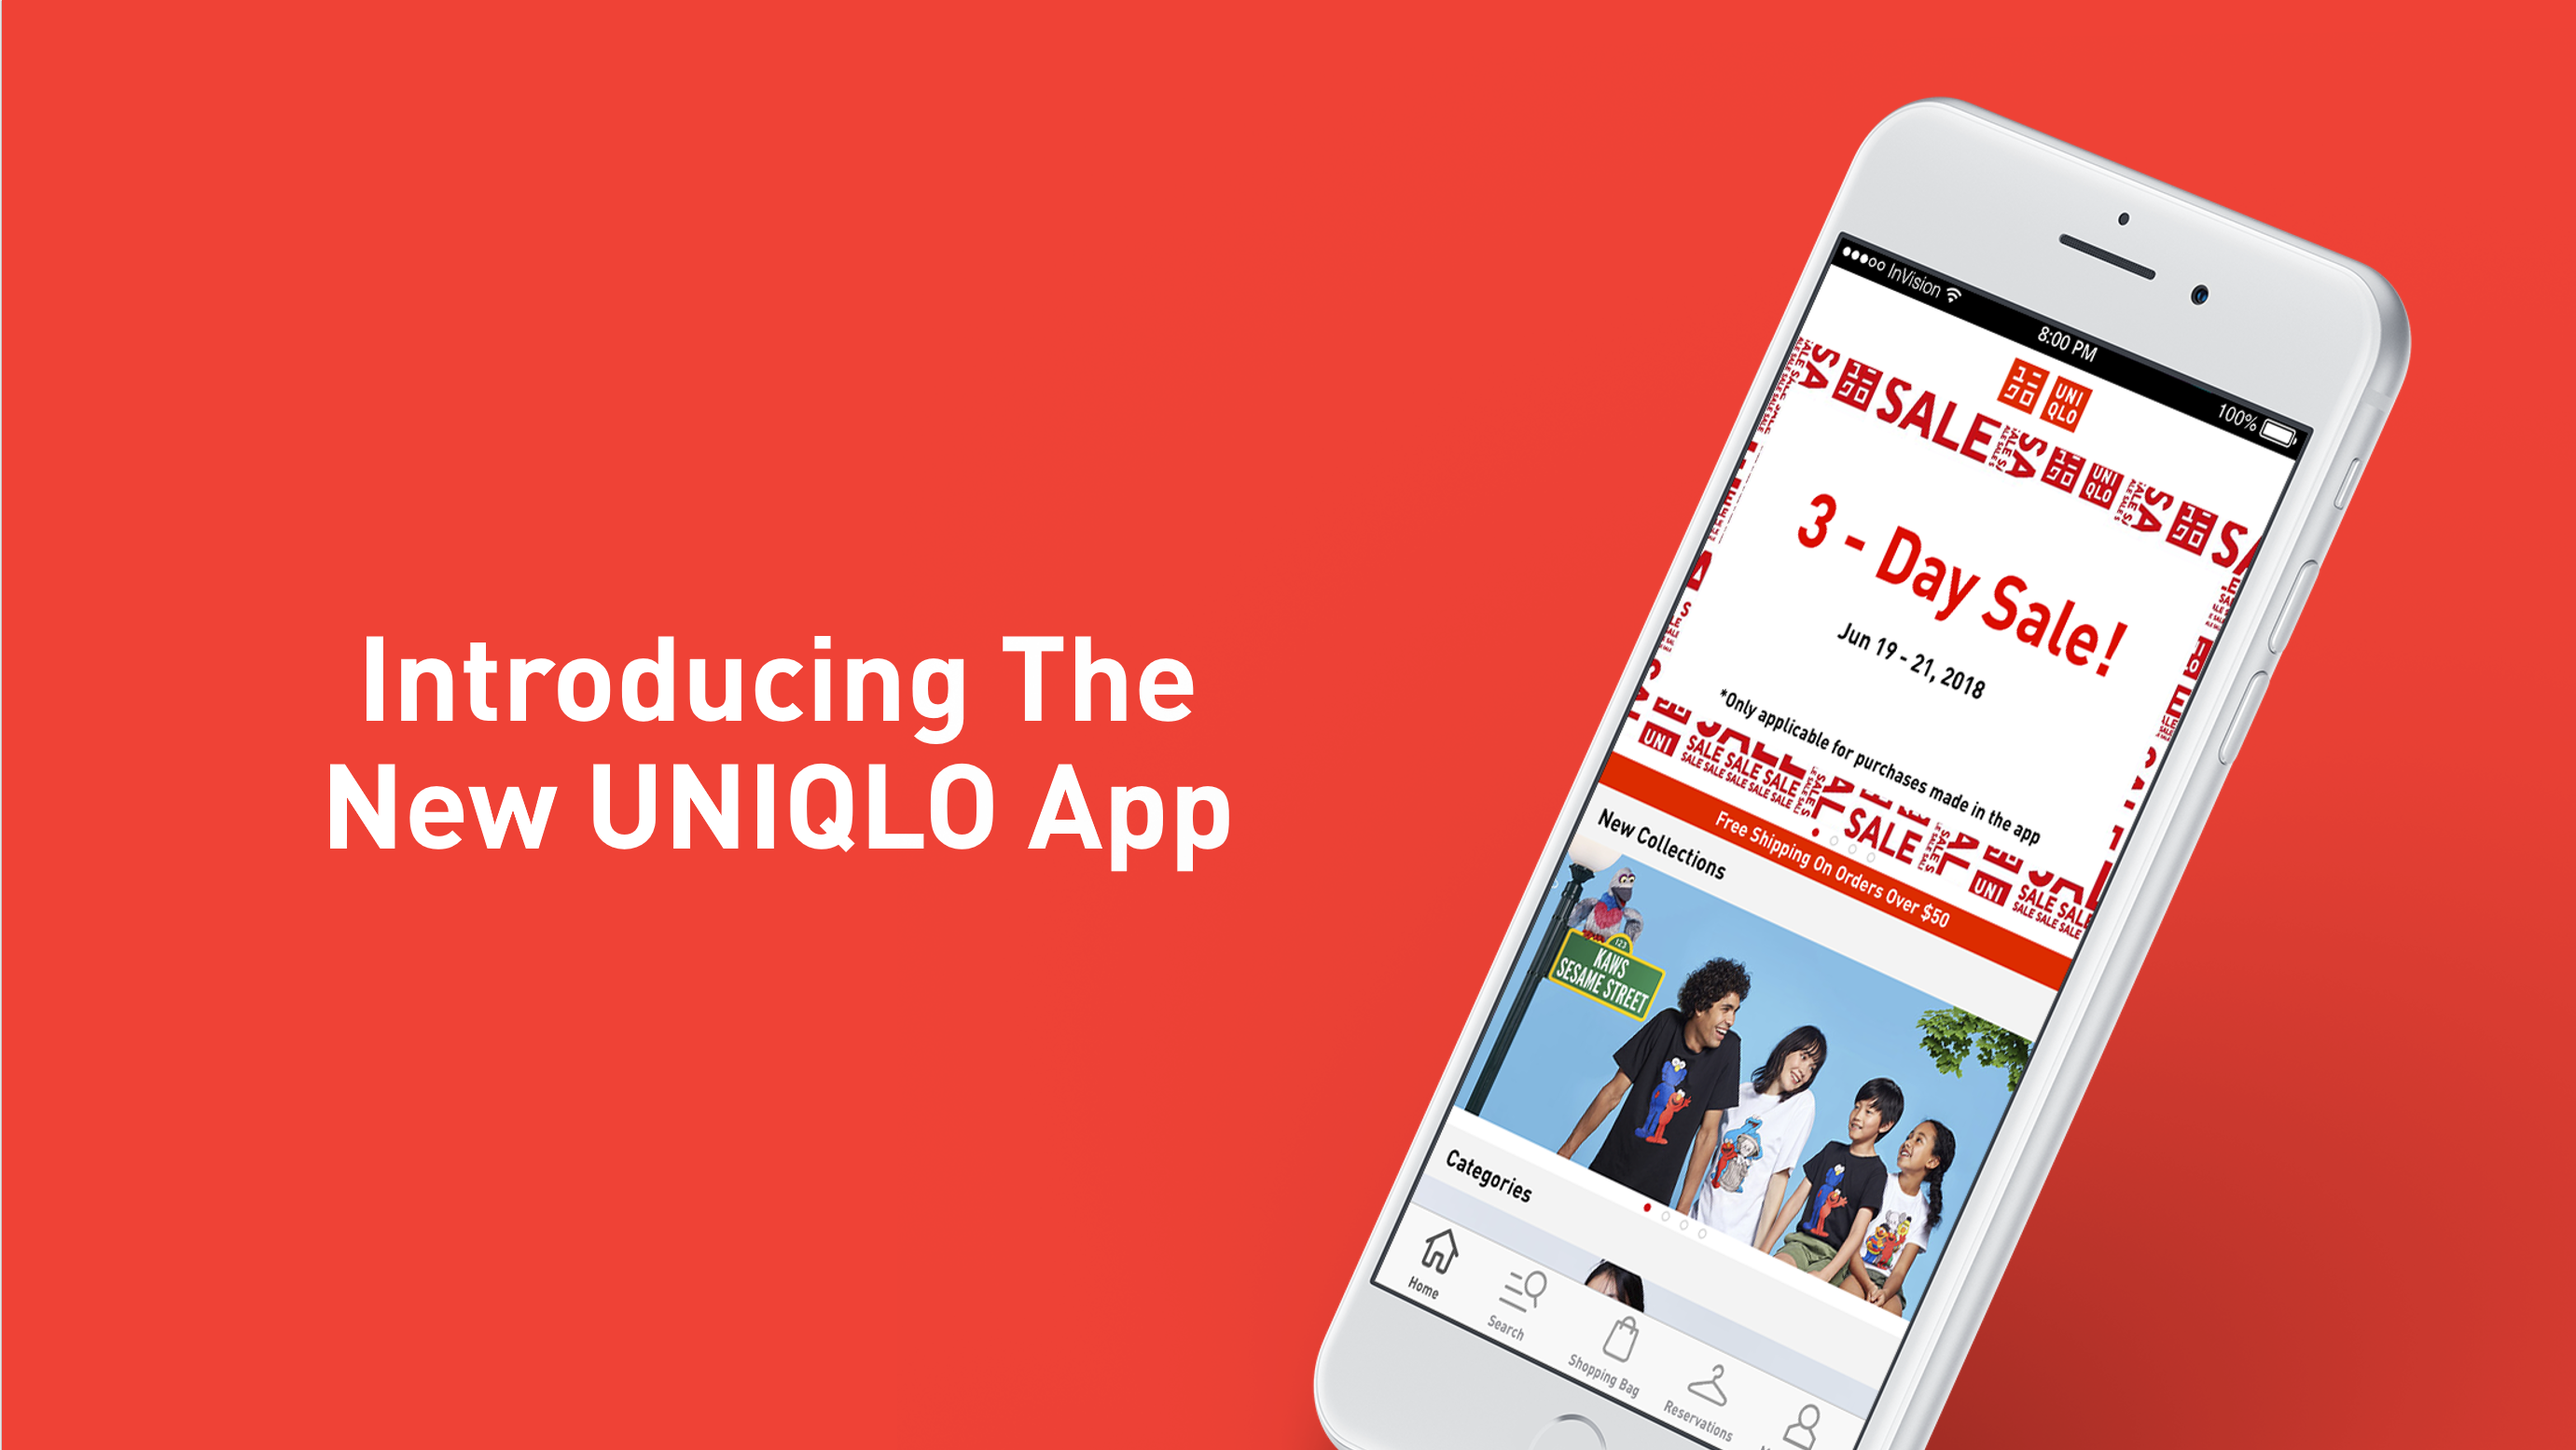 Redesigning The Uniqlo App This Case Study Outlines The Process My By Zhao Seow Medium